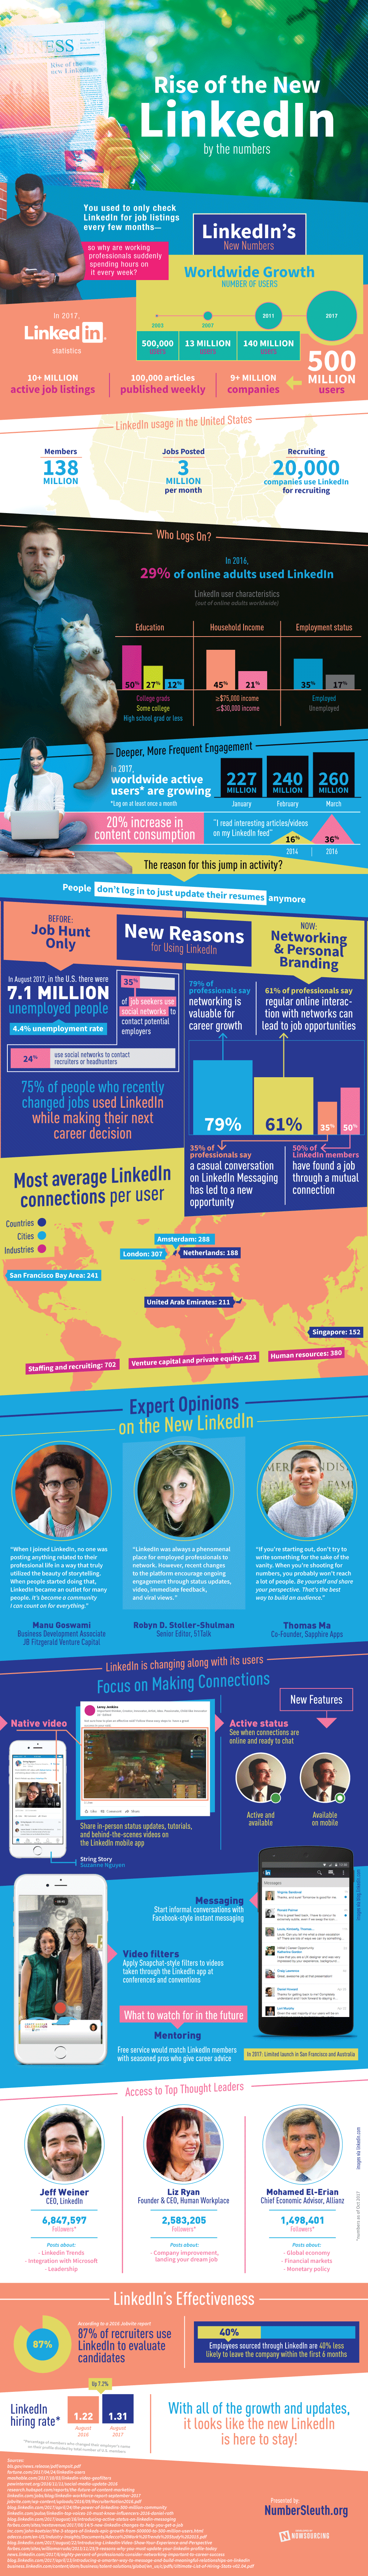 The Rise of the New LinkedIn (by The Numbers) [Infograhic] | Social Media Today